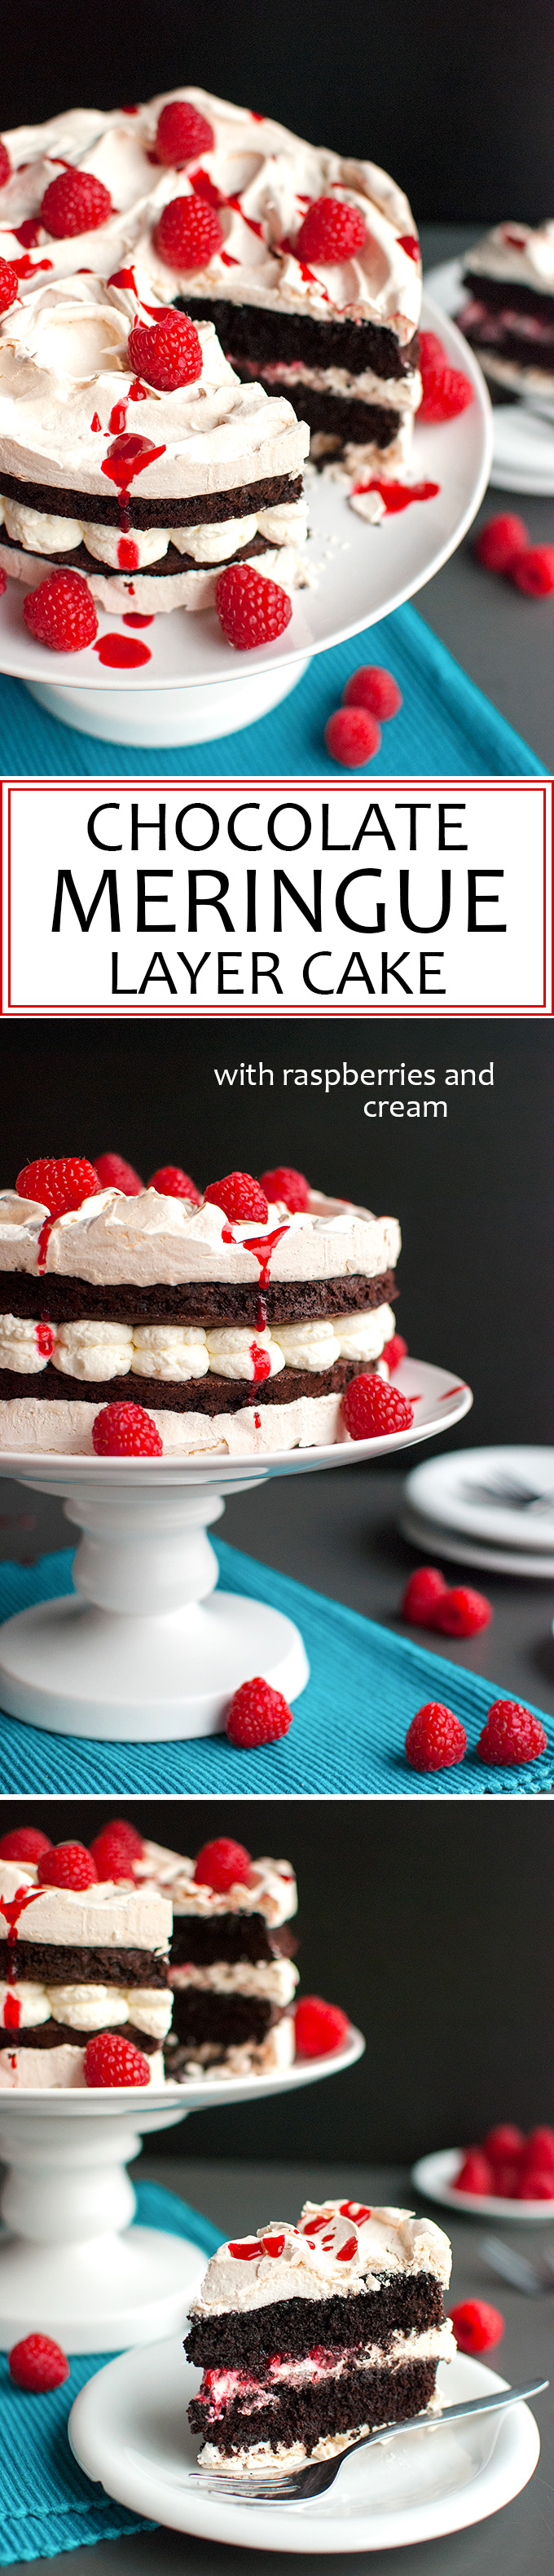 The Tough Cookie | Chocolate Meringue Layer Cake with Raspberries and Cream | thetoughcookie.com